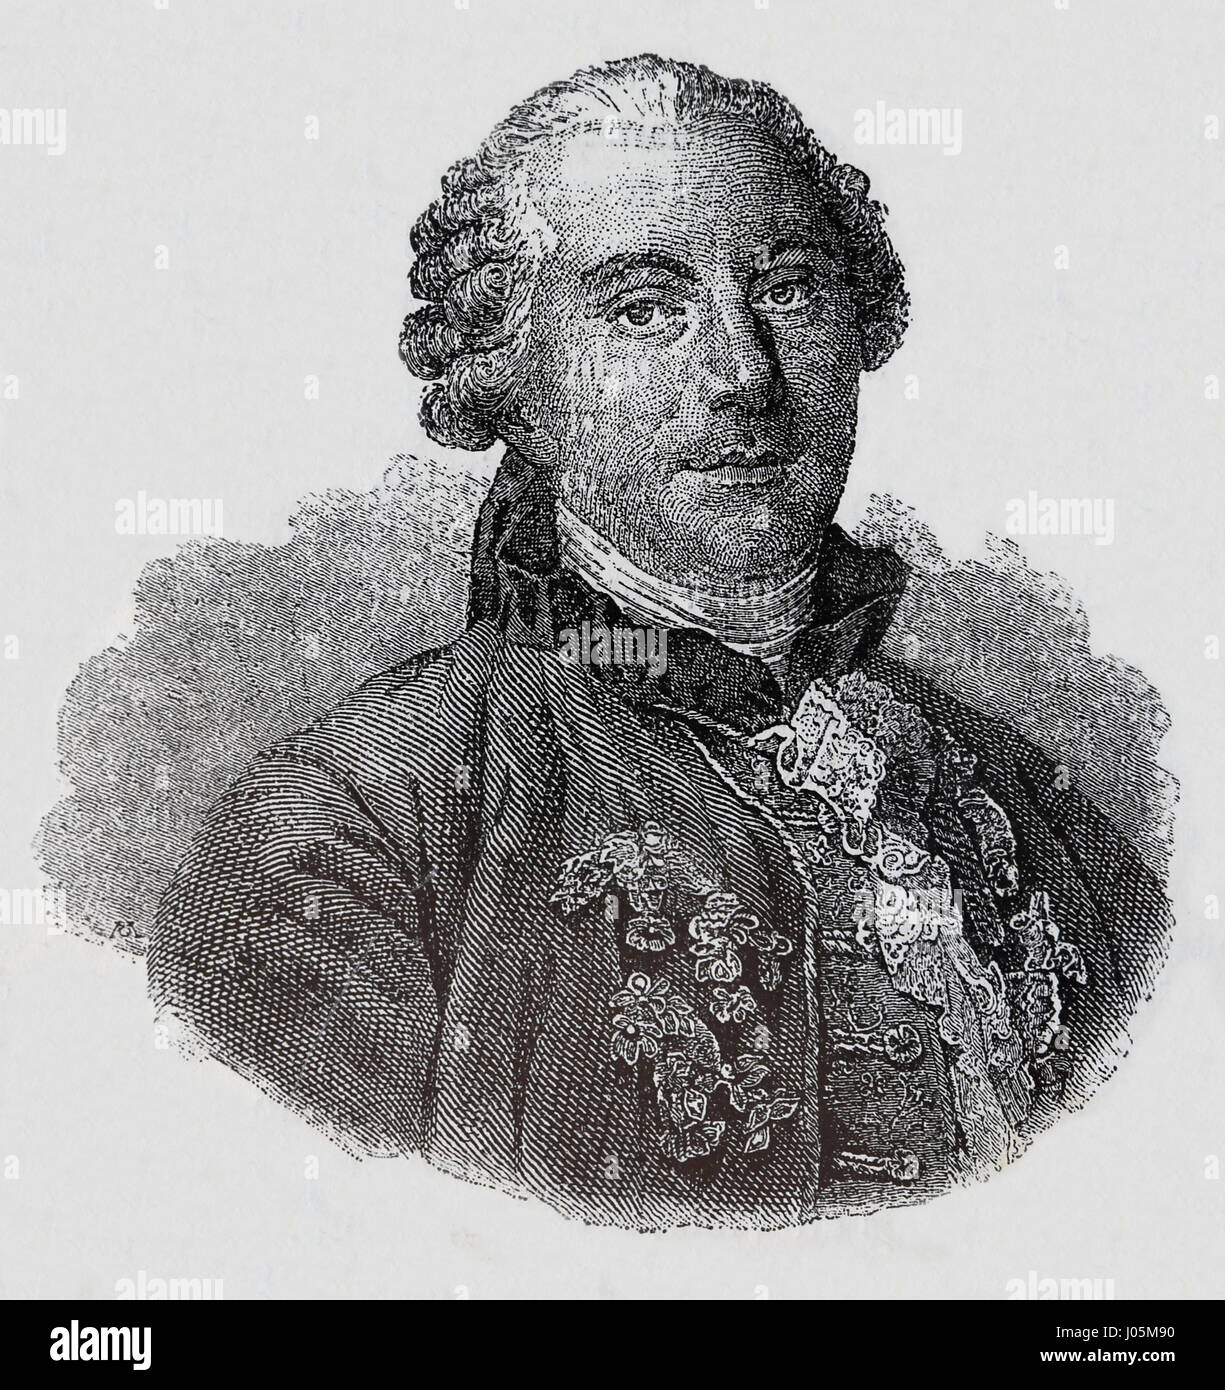 Geoge-Louis Leclerc Buffon (1707-1778). French naturalist. Engraving, Nuestro Siglo),1883.  Spanish edition Stock Photo